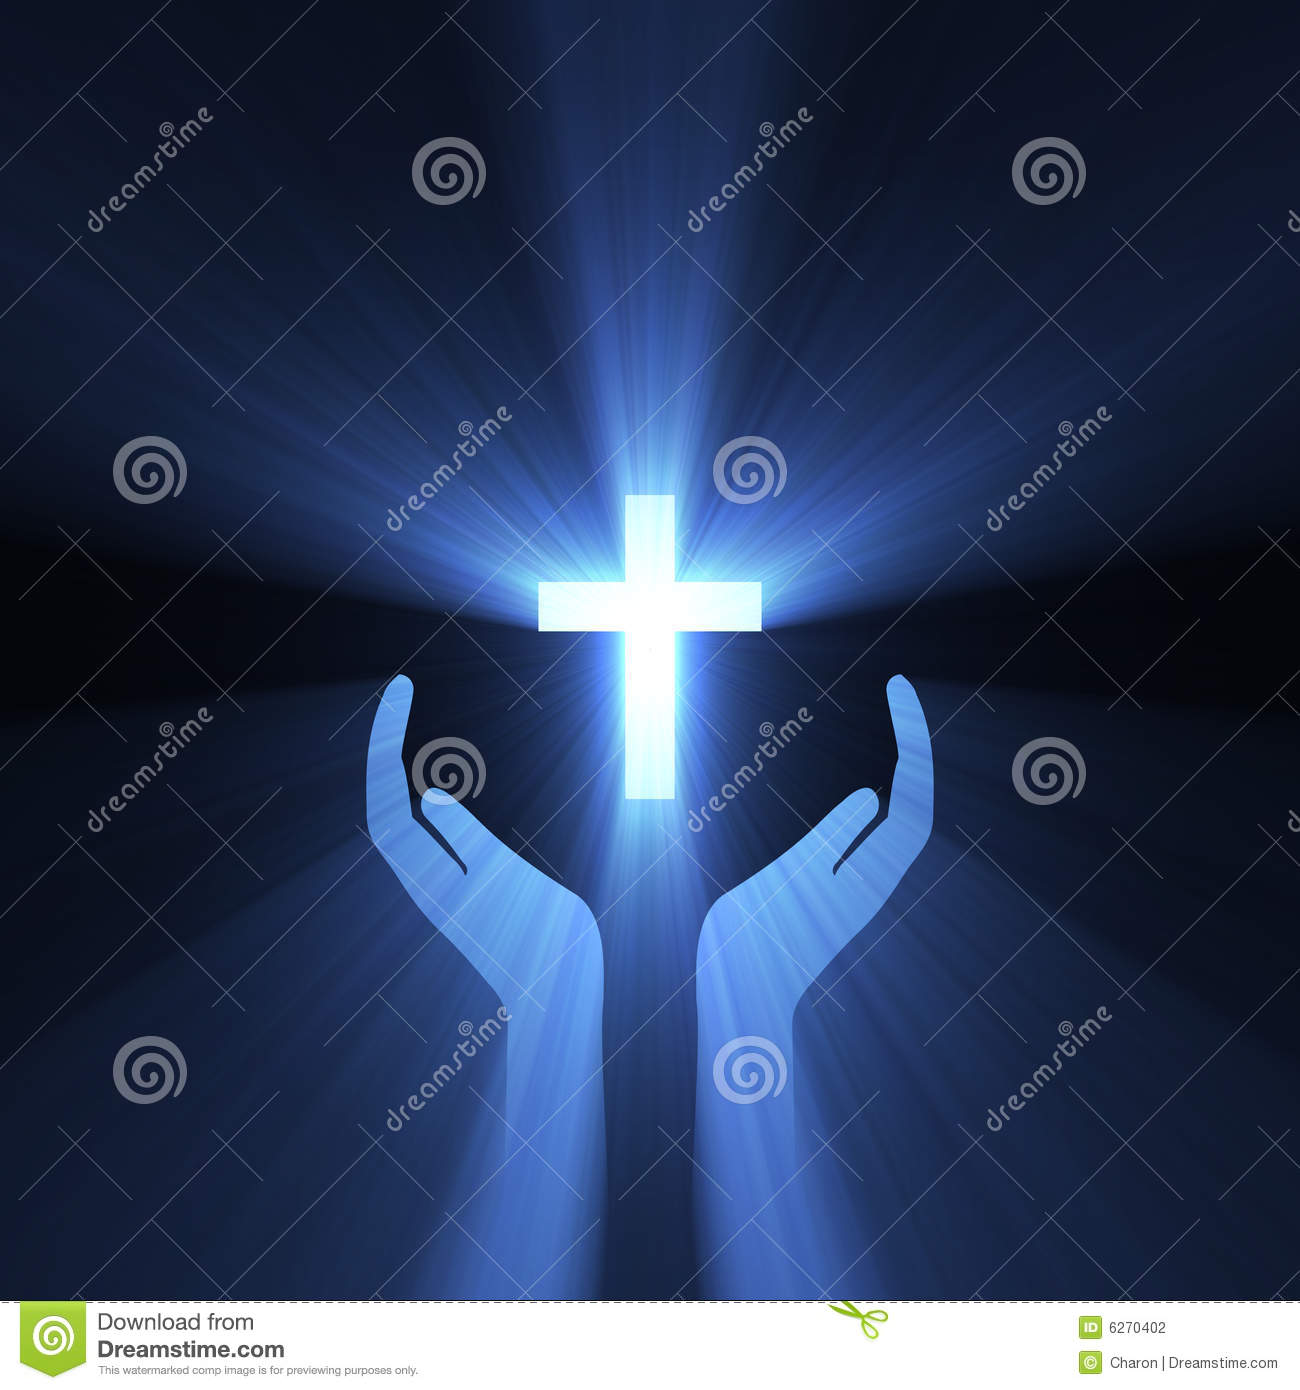 Holding Hands Love Quotes Wallpapers Hand Embrace God Cross Light Flare Stock Illustration